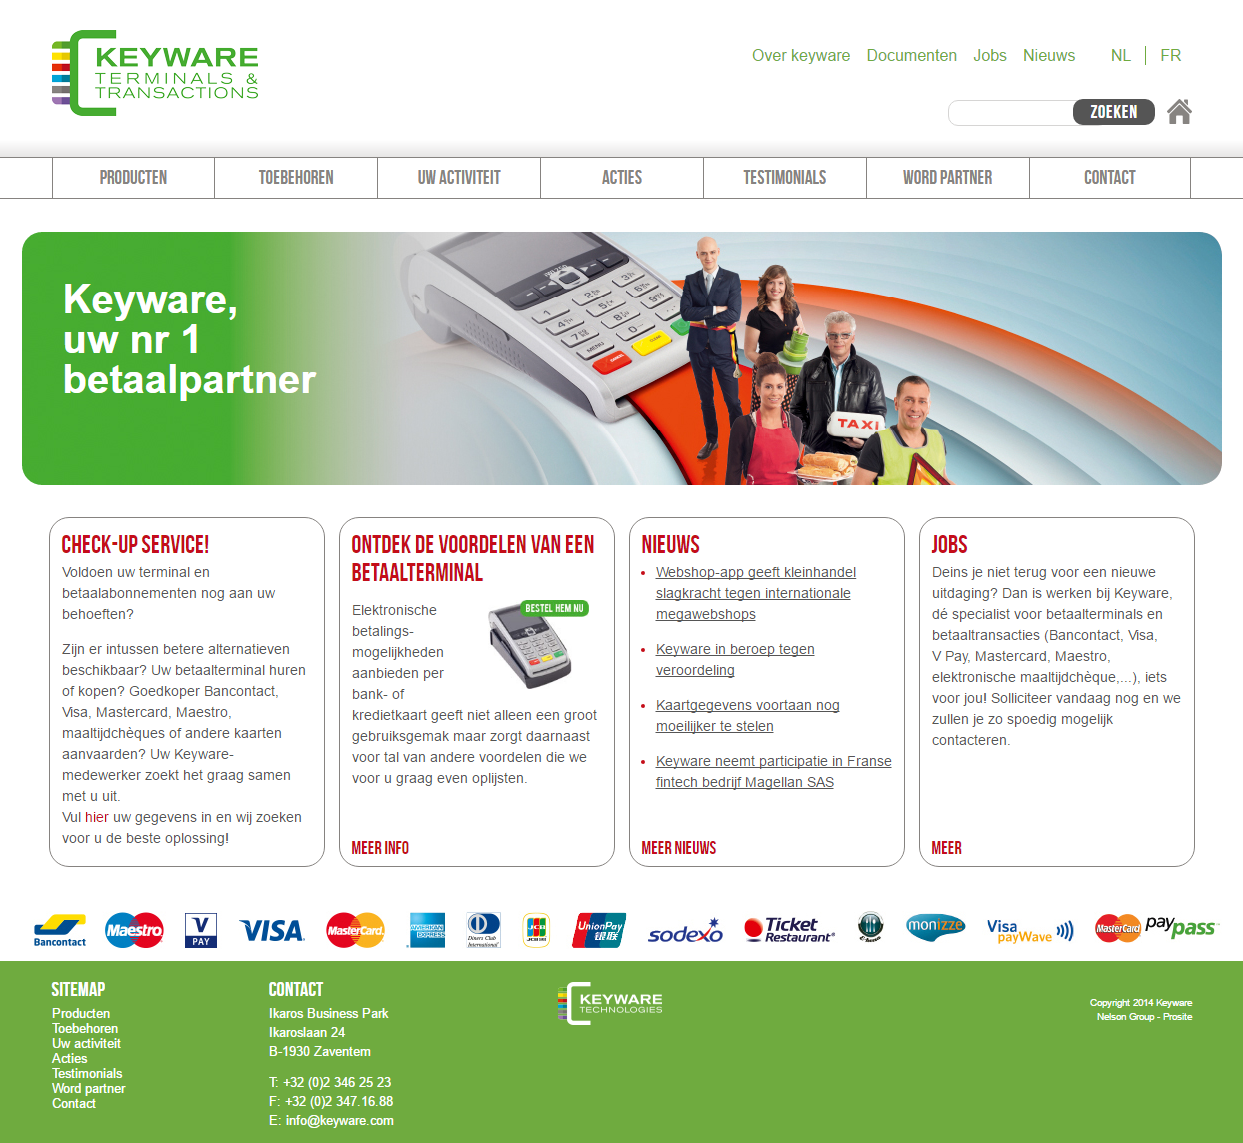 Keyware Terminals & Transactions website screenshot